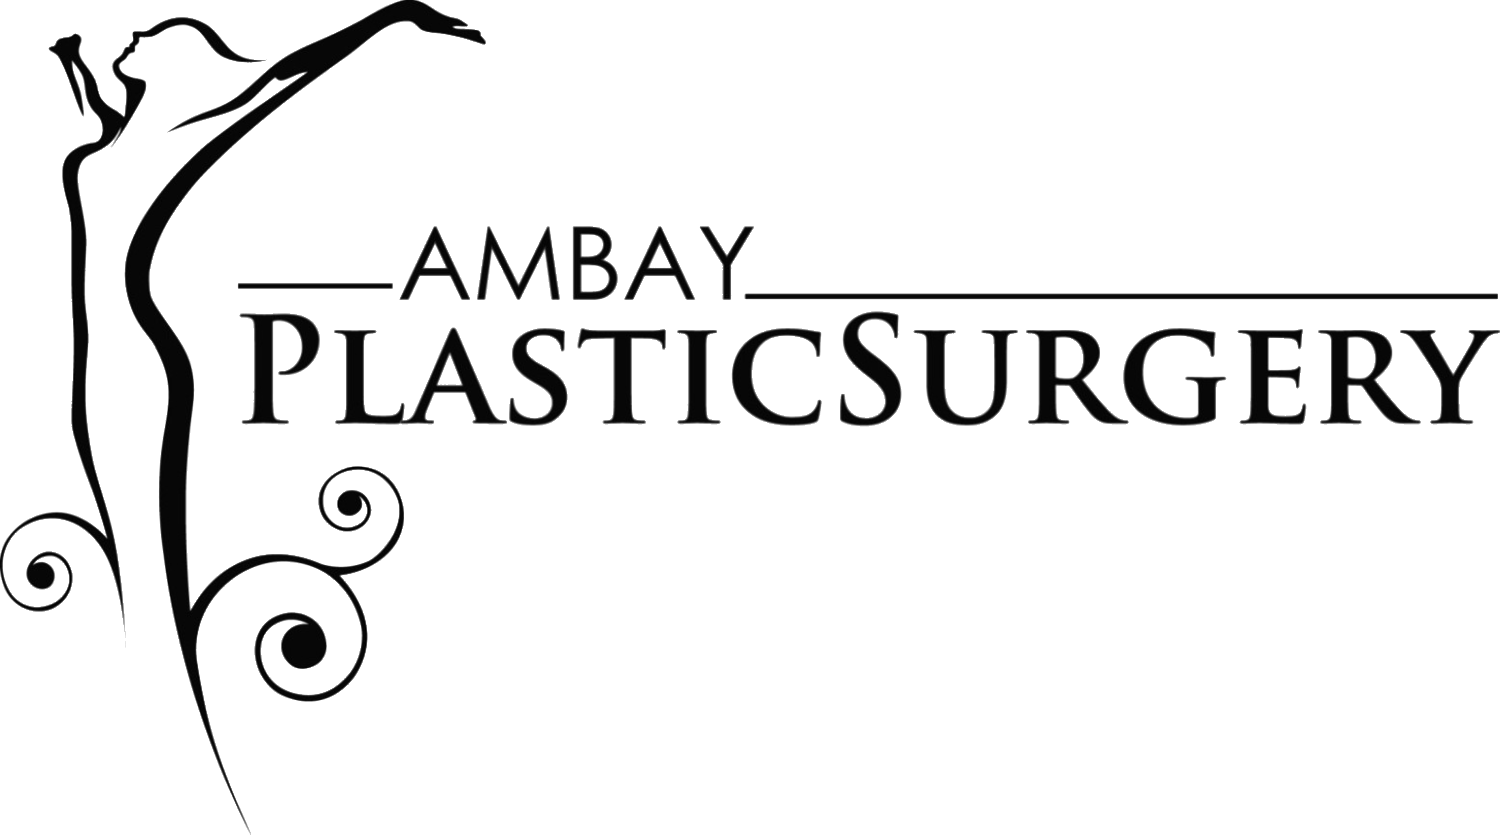 Ambay Plastic Surgery & Breast Reconstruction